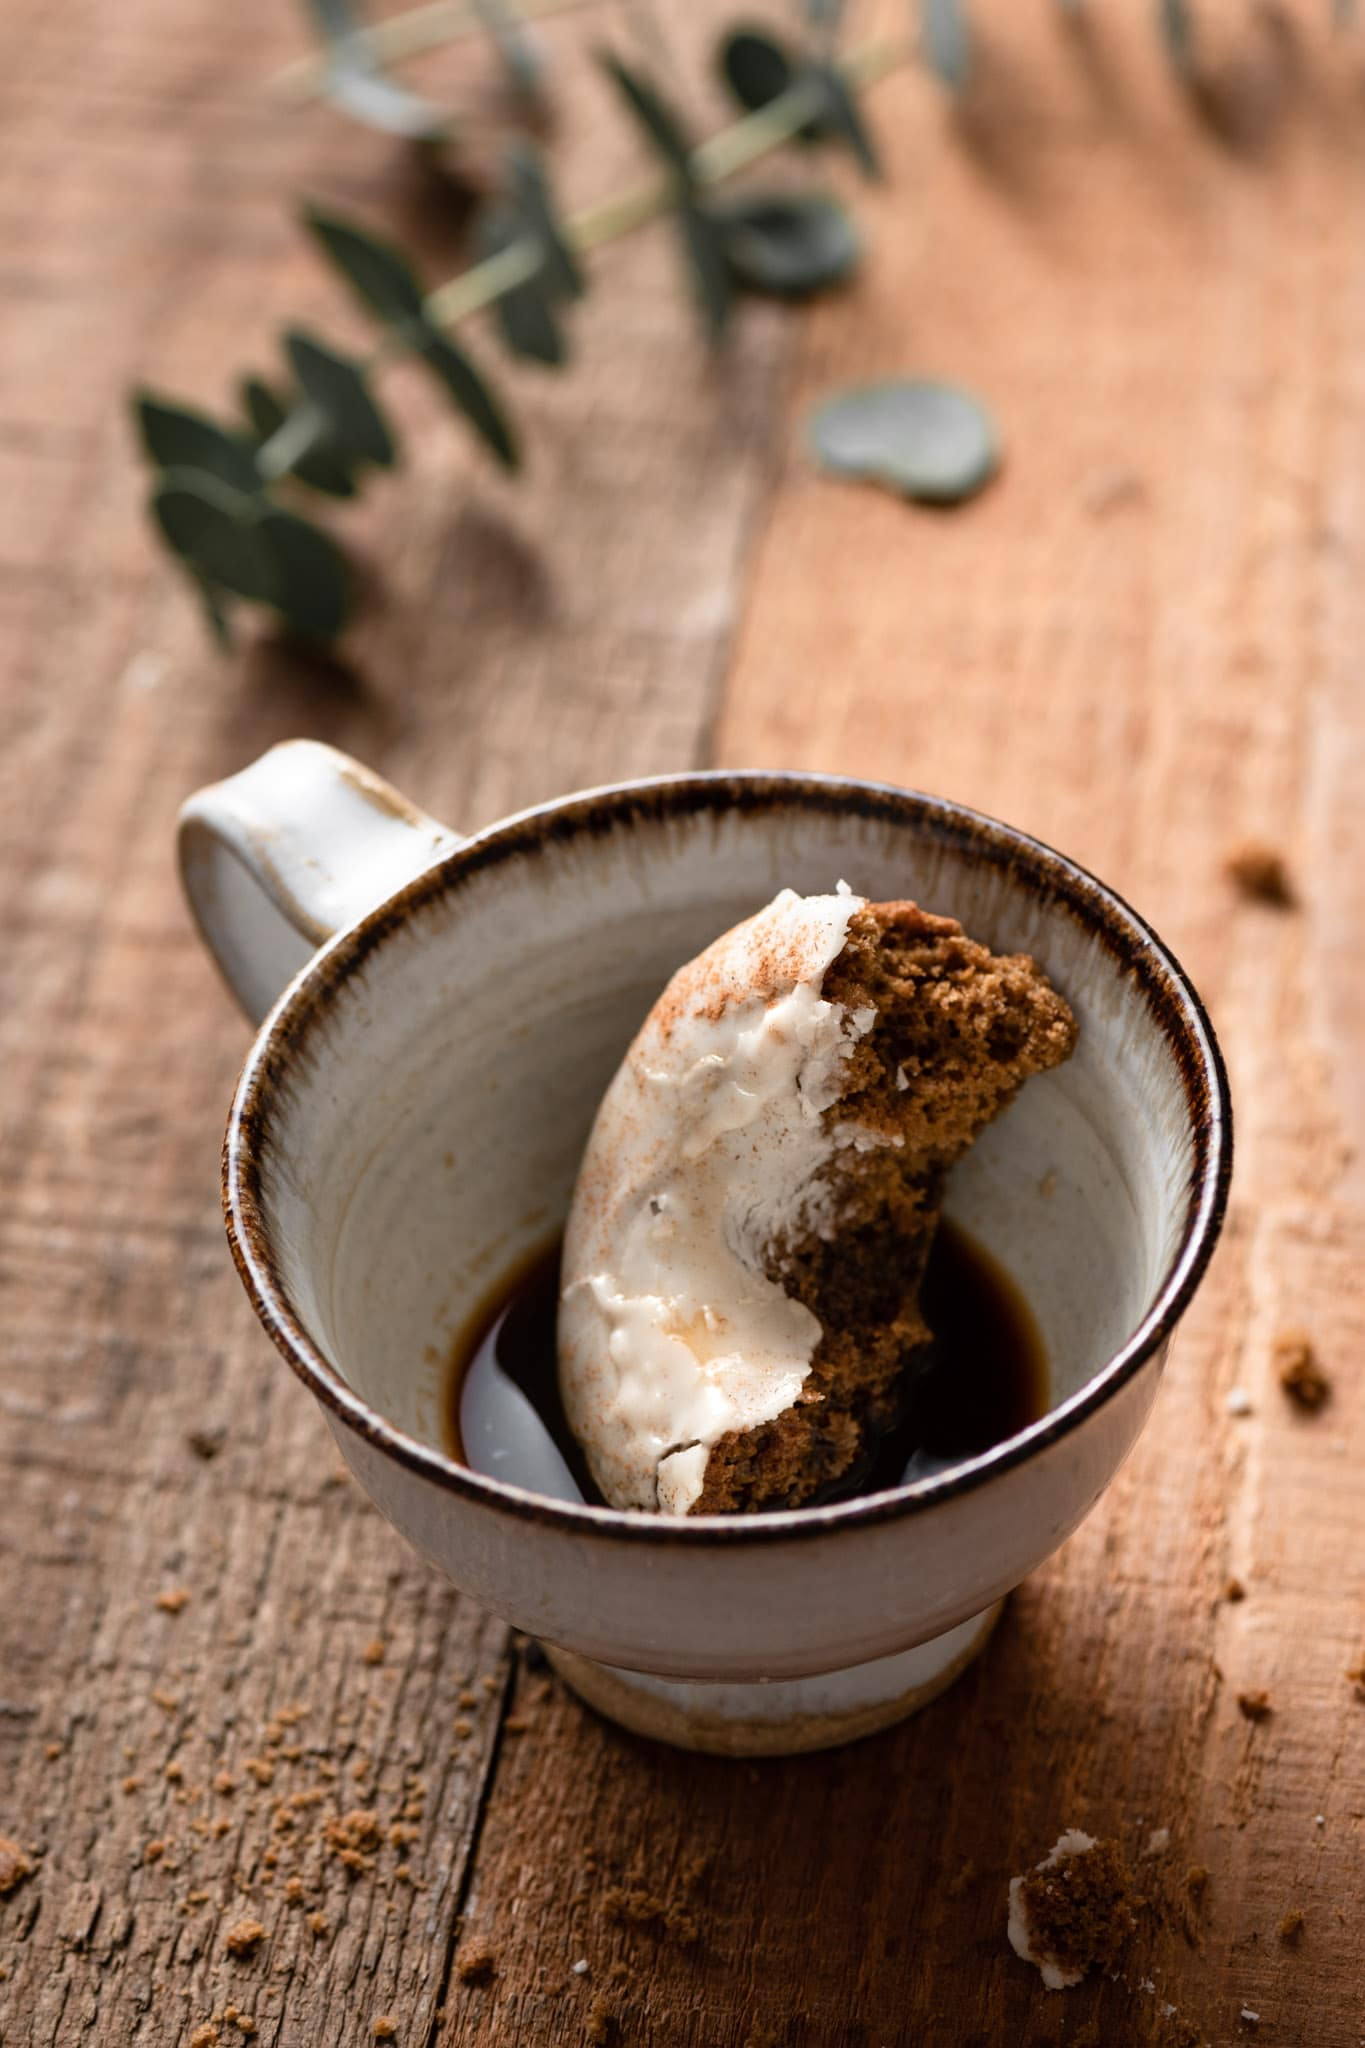 Gingerbread doughnut dunked into a cup of gingerbread coffee.